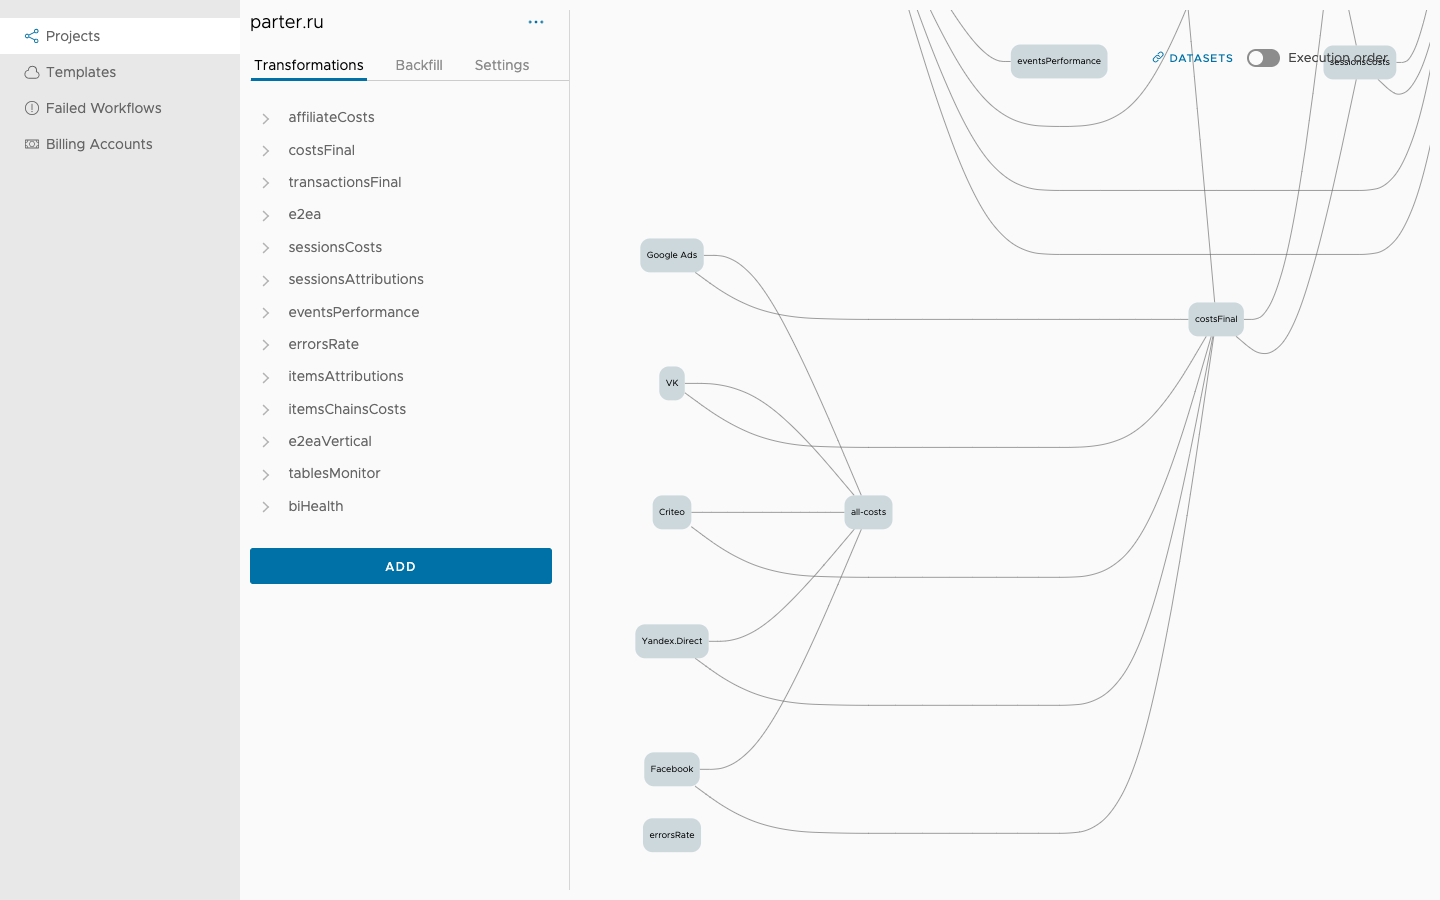 An example of dataflow on the Parter.ru (Eventim) website